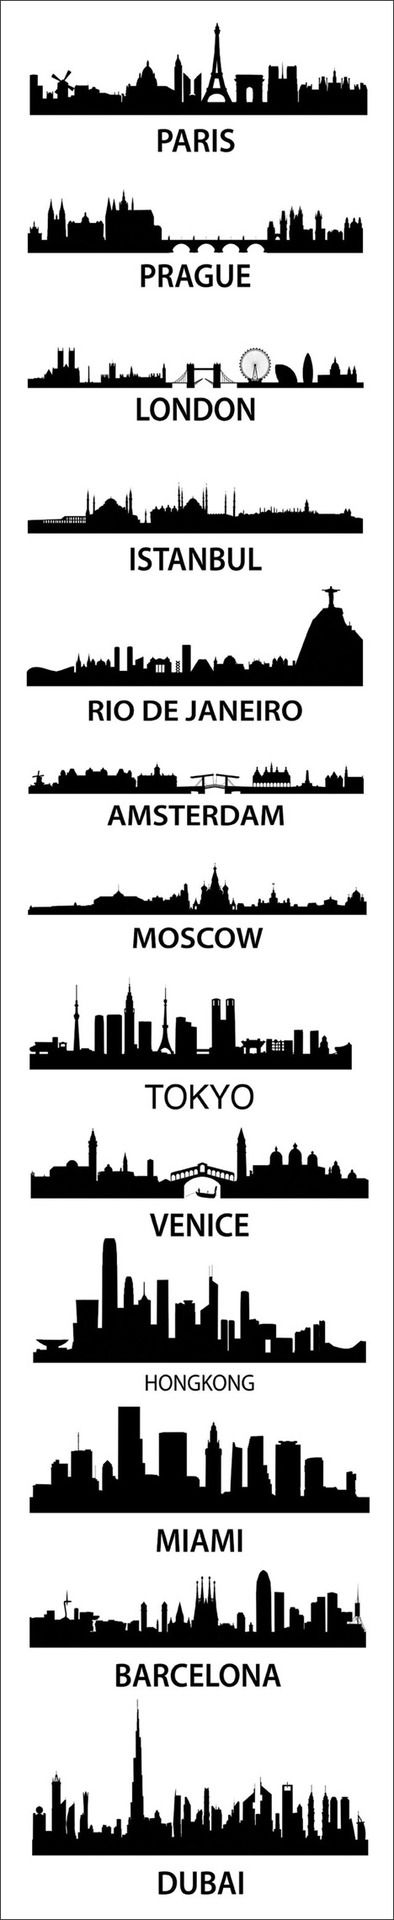 Cities of the world